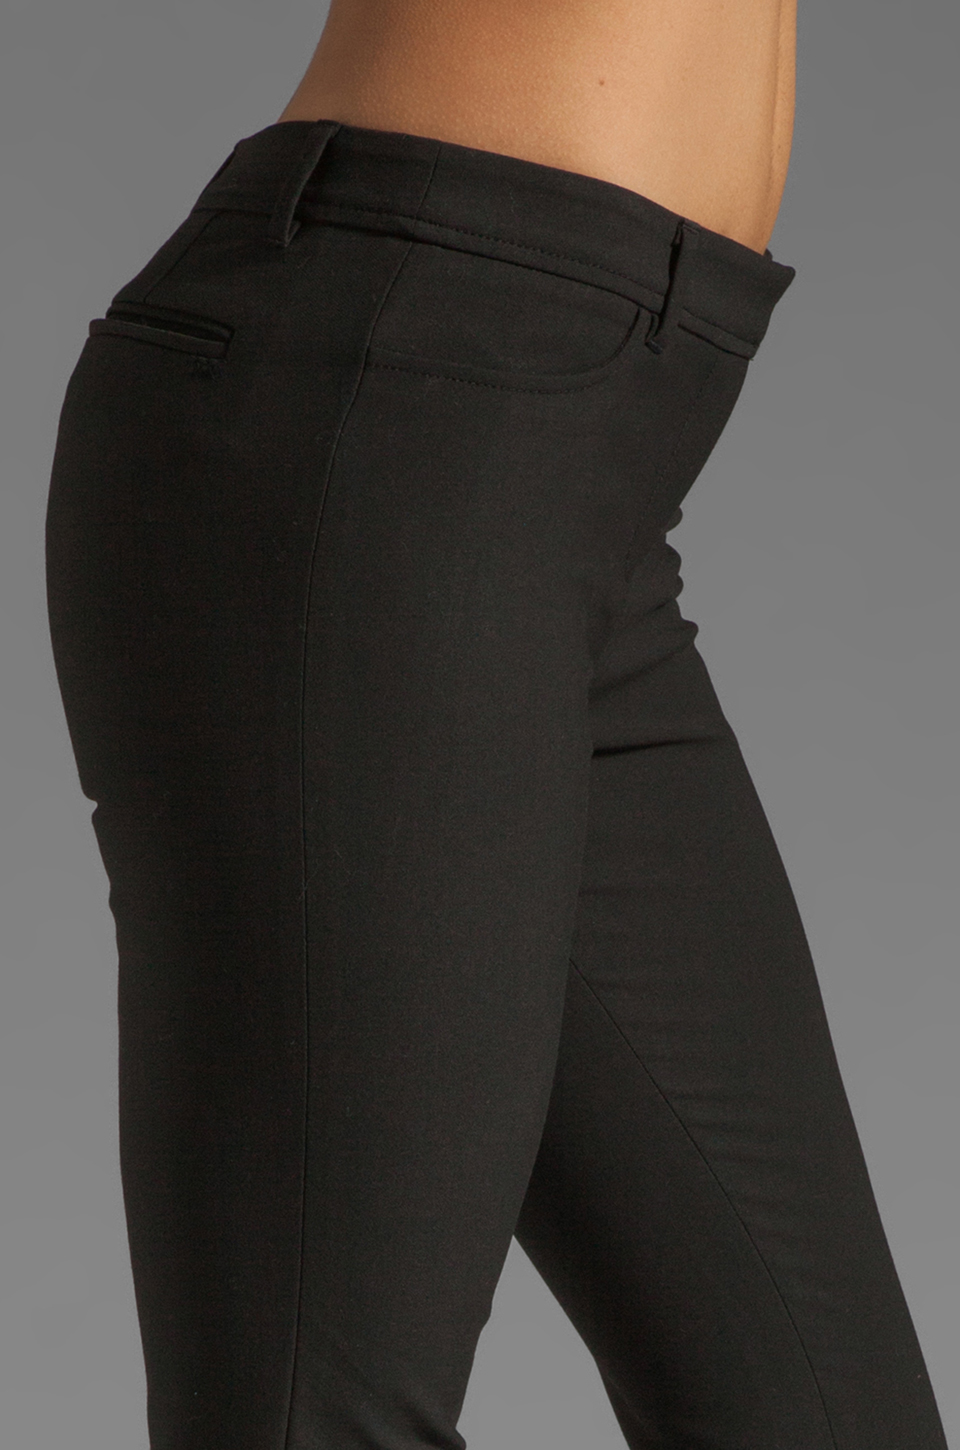 Elizabeth and James Wyatt Trouser in Black